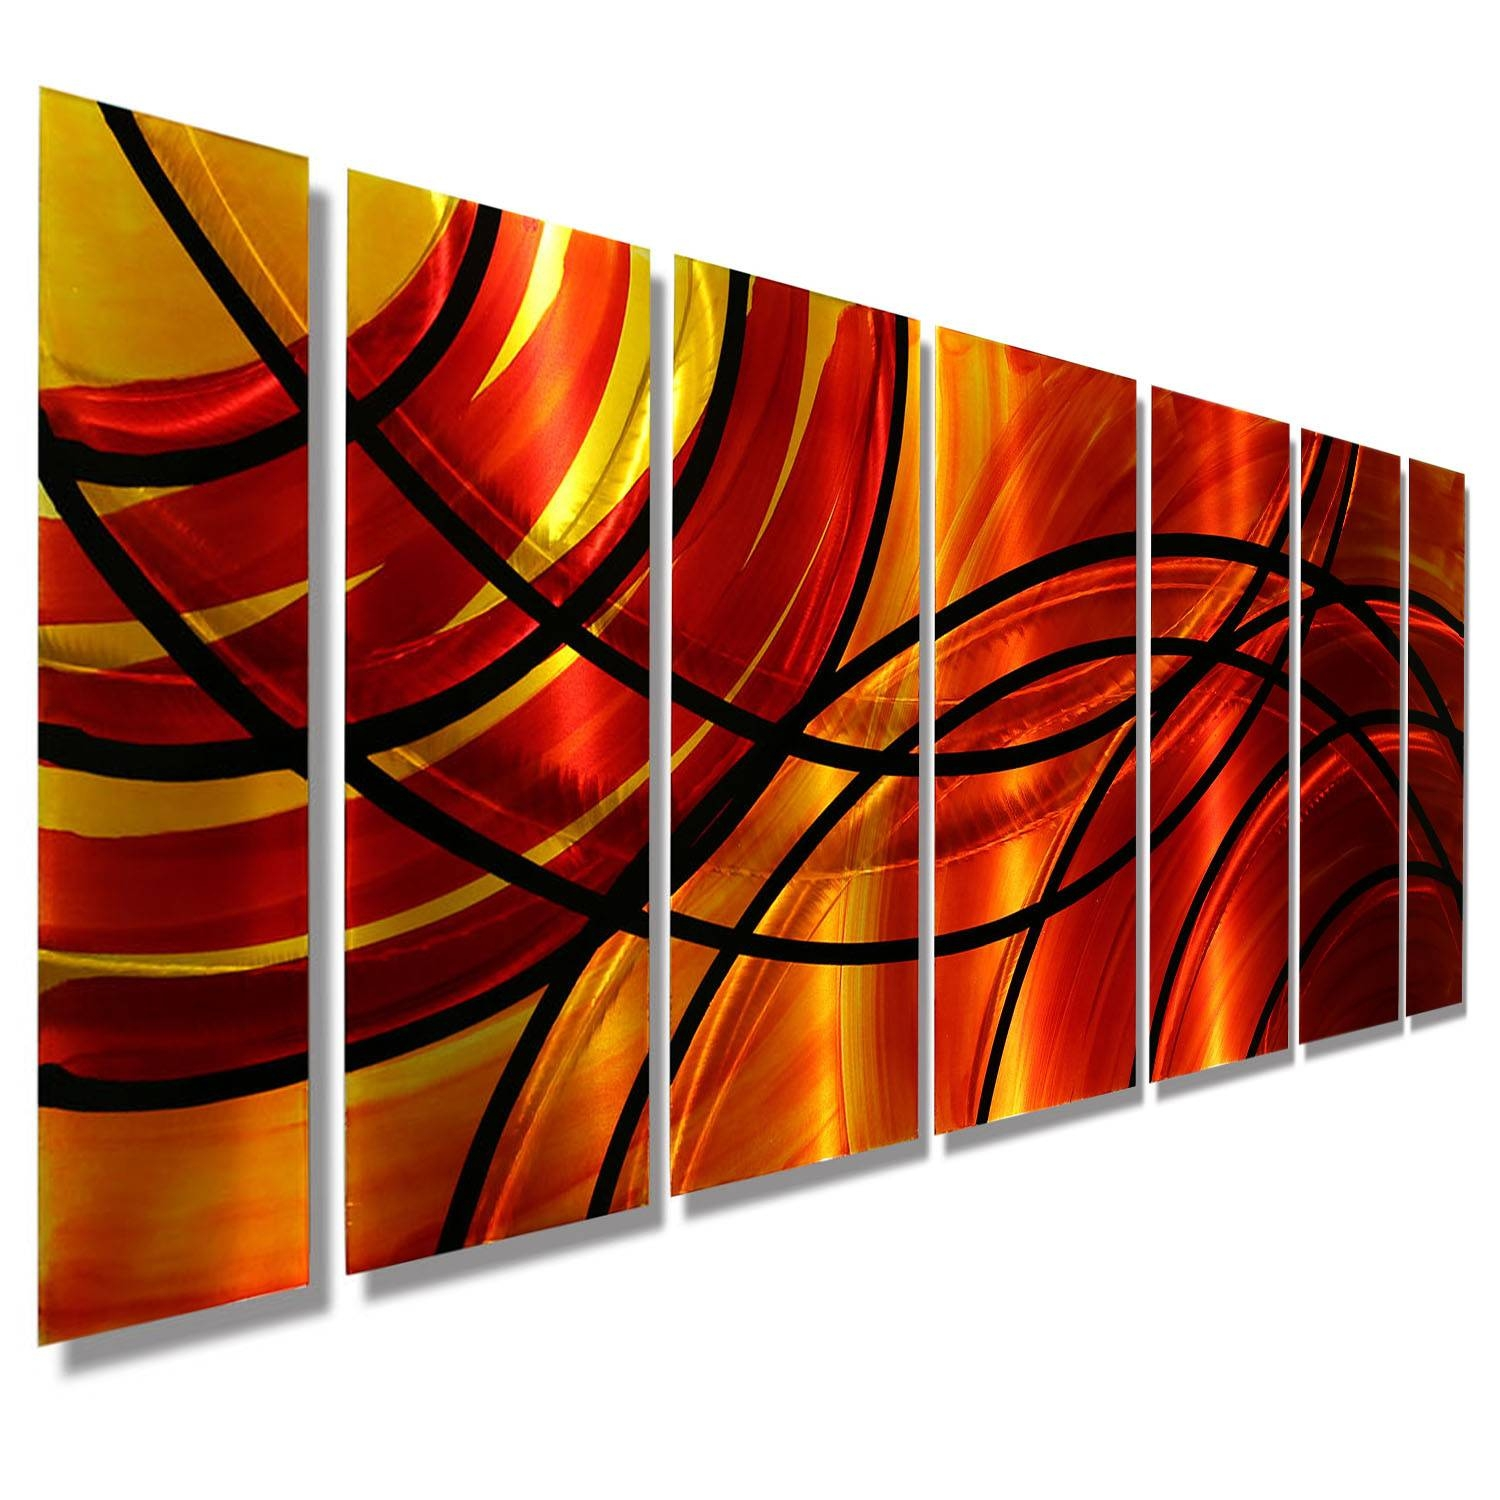 Boundfire – Red & Orange Modern Metal Wall Artjon Allen With Regard To Newest Painted Metal Wall Art (View 2 of 20)